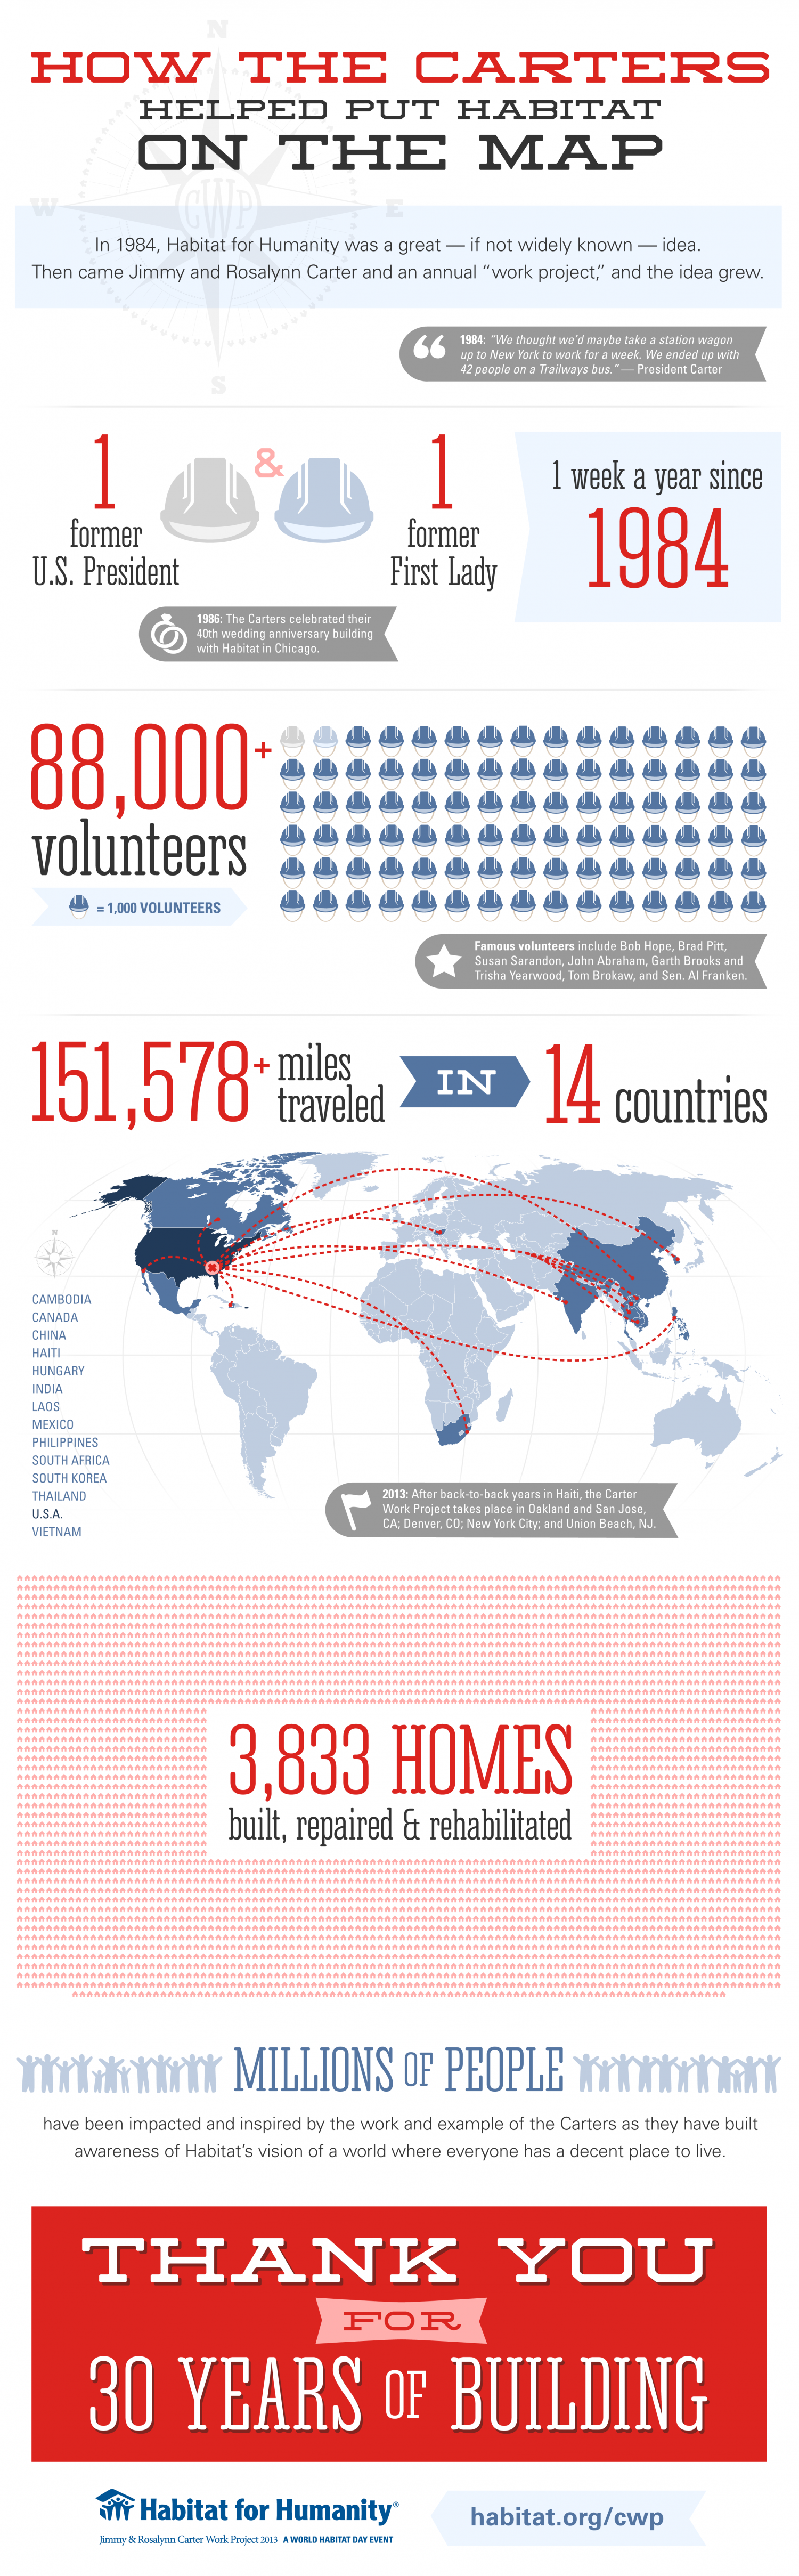 How the Carters Helped Put Habitat on the Map Infographic